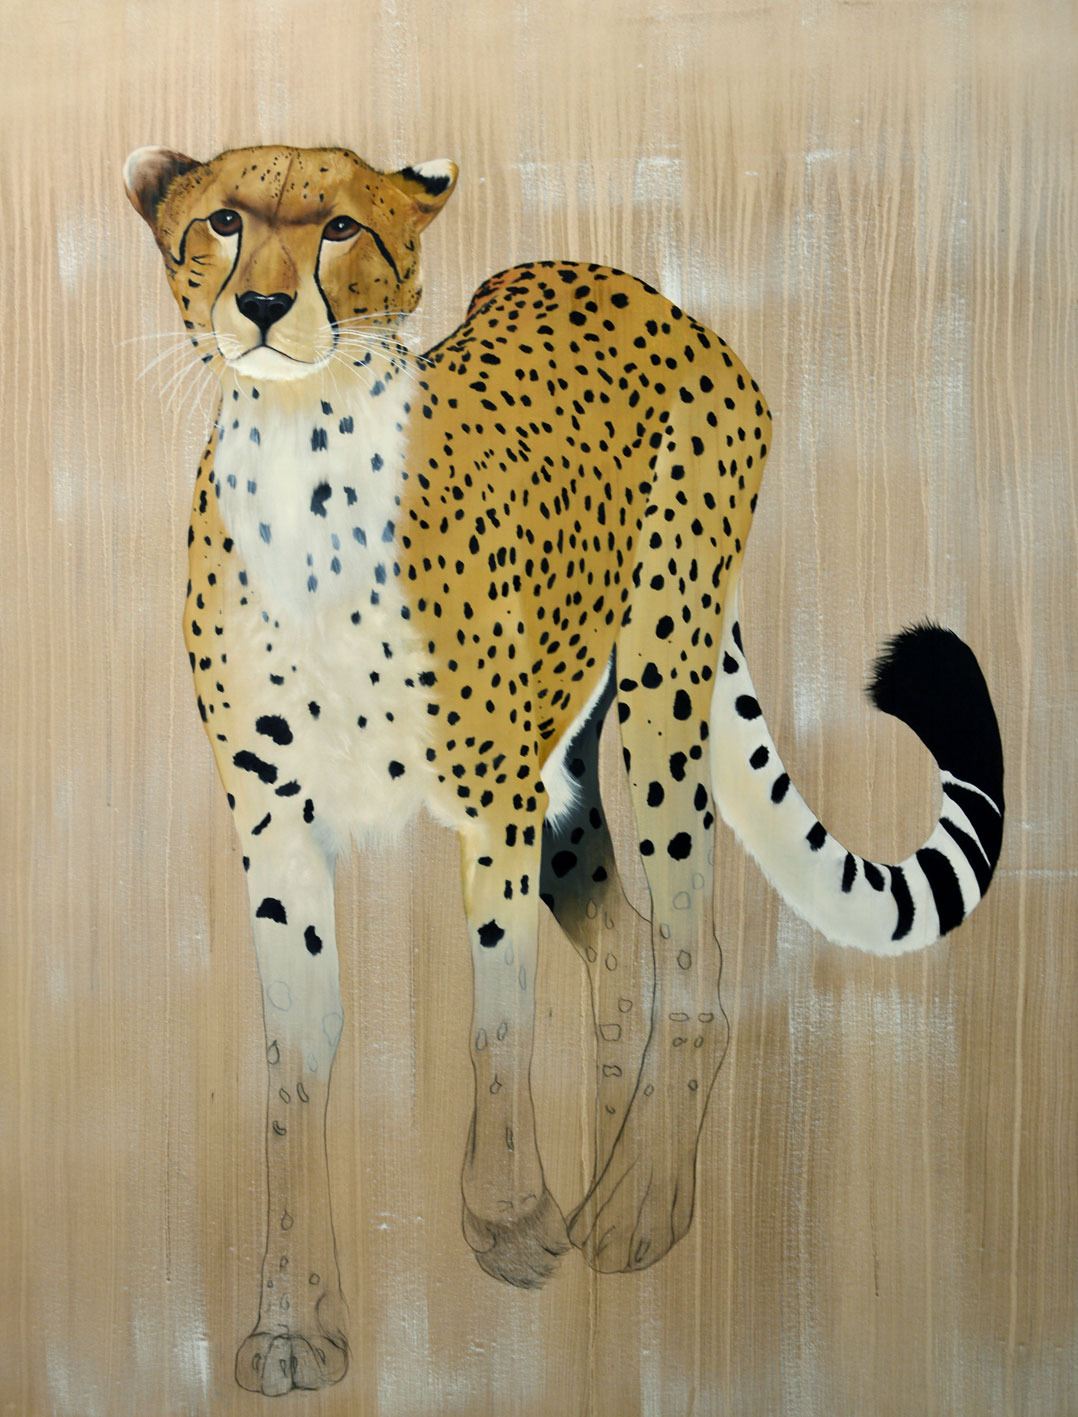 ACINONYX JUBATUS acinonyx-jubatus-cheetah-delete-threatened-endangered-extinction- Thierry Bisch painter animals painting art decoration hotel design interior luxury nature biodiversity conservation